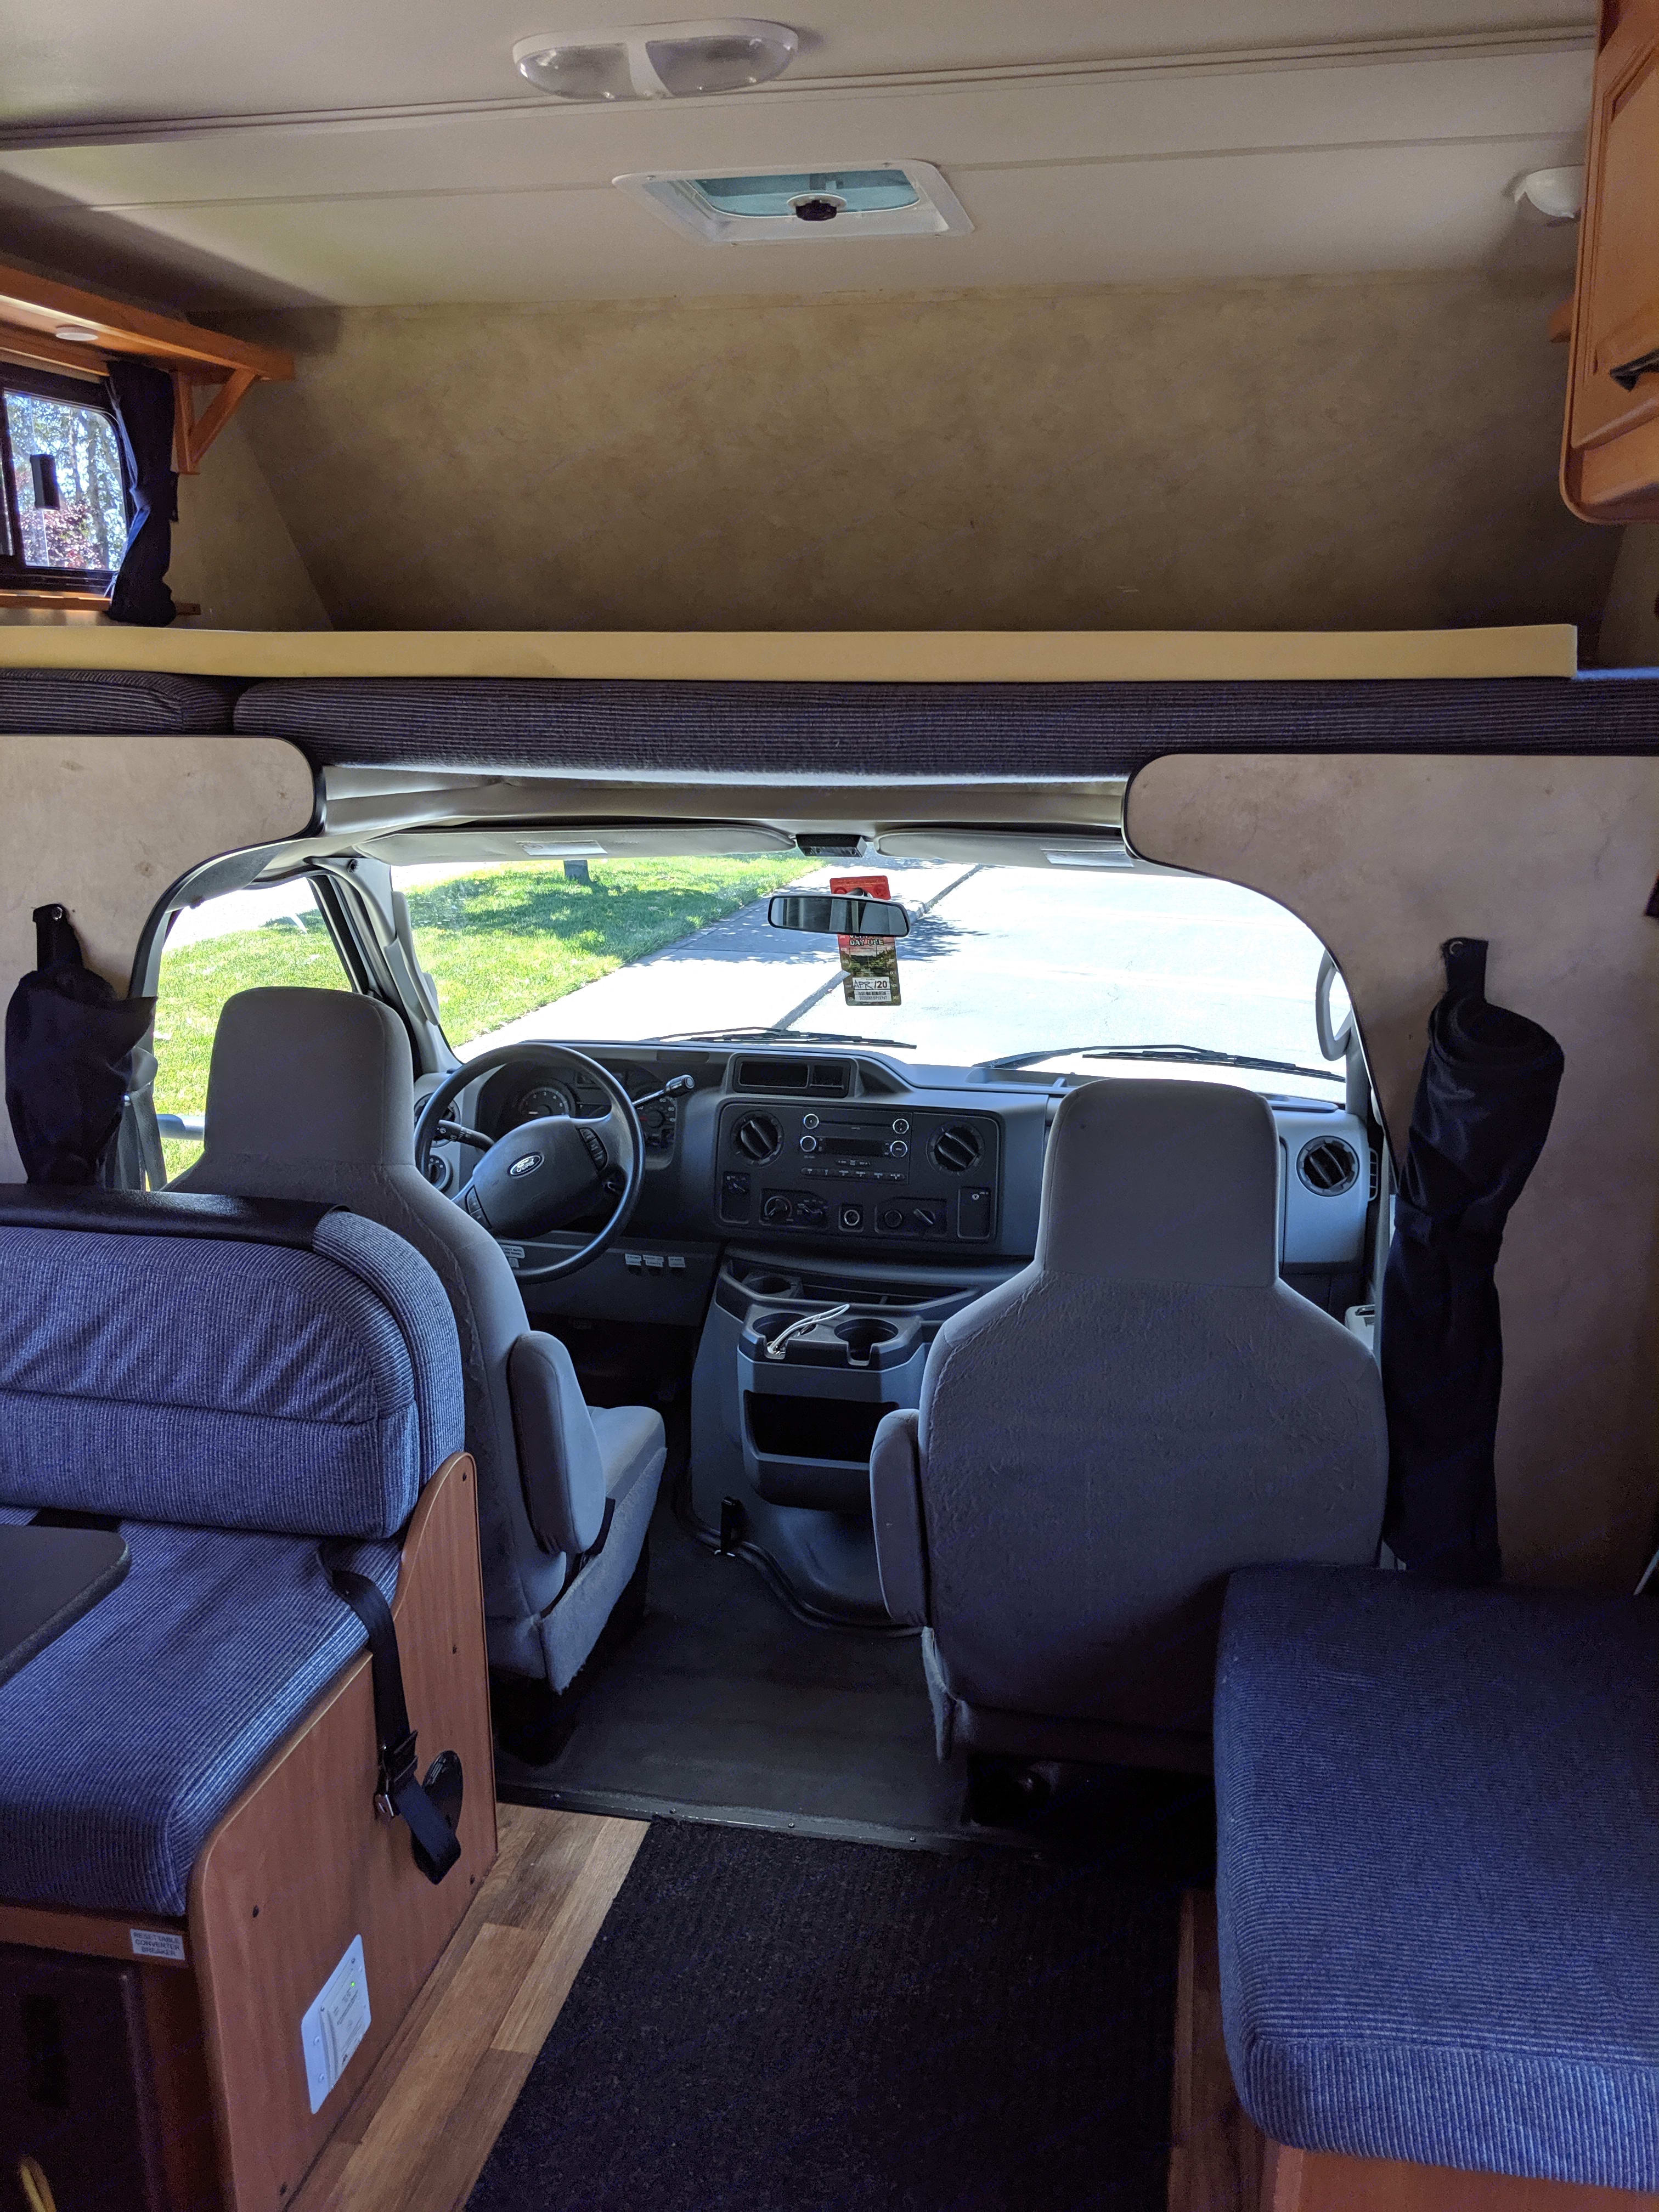 Queen size over-cab bed sleeps 2 + comfy captain area. Thor Motor Coach Four Winds Majestic 23a 2012